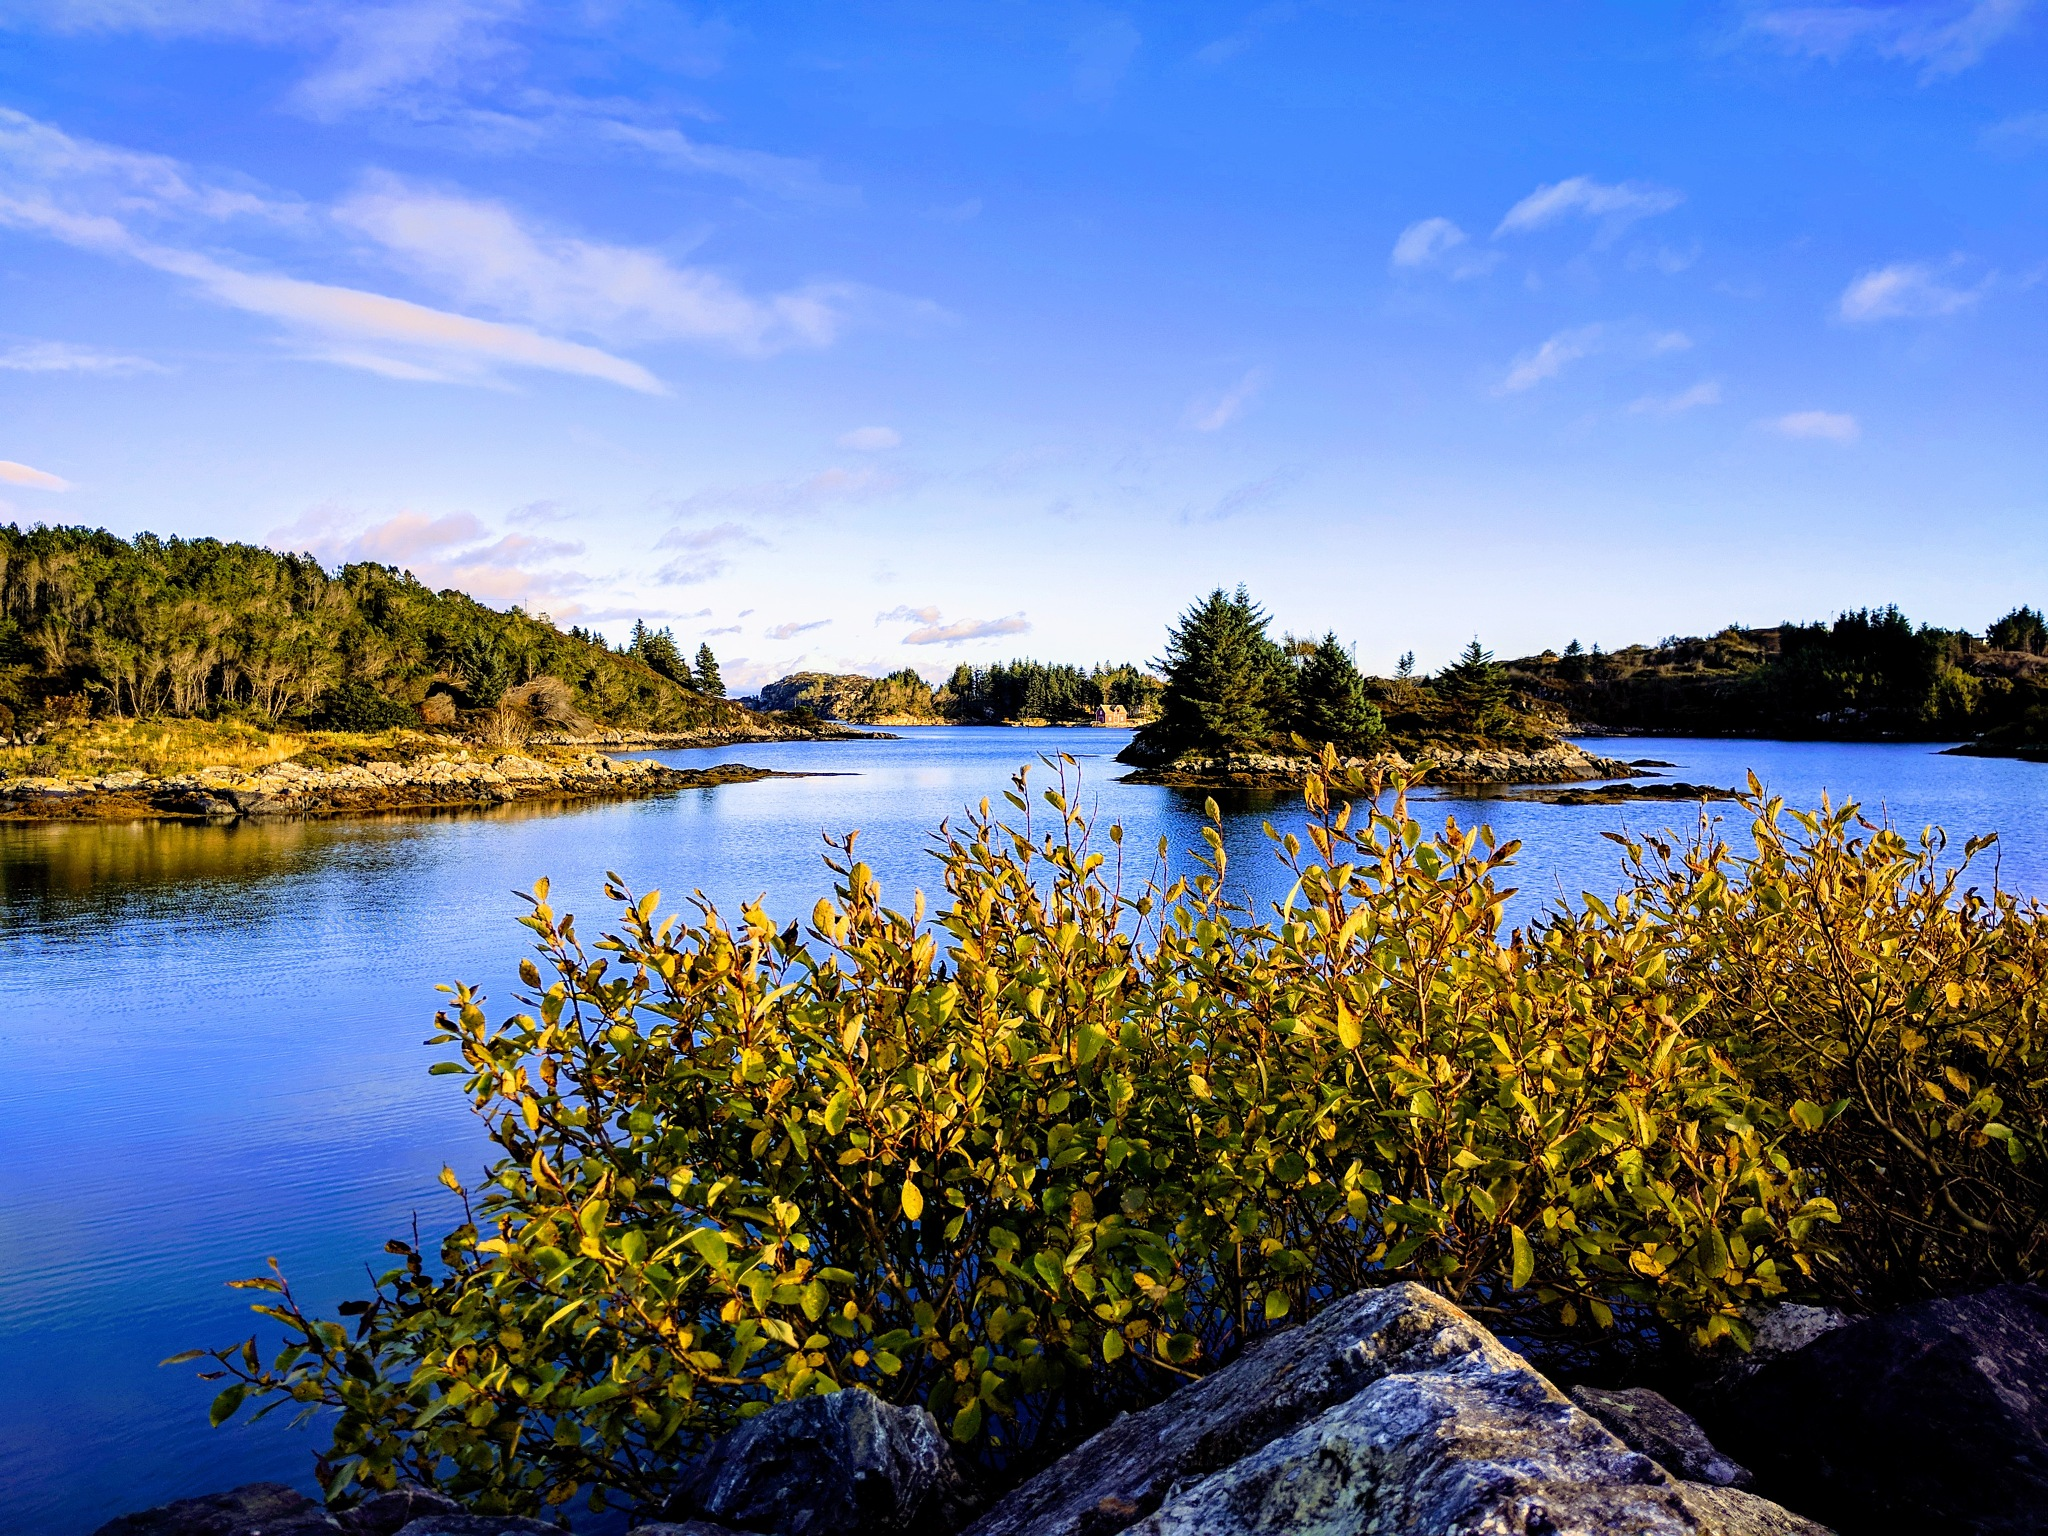 #Calm day in Rongevær by marit